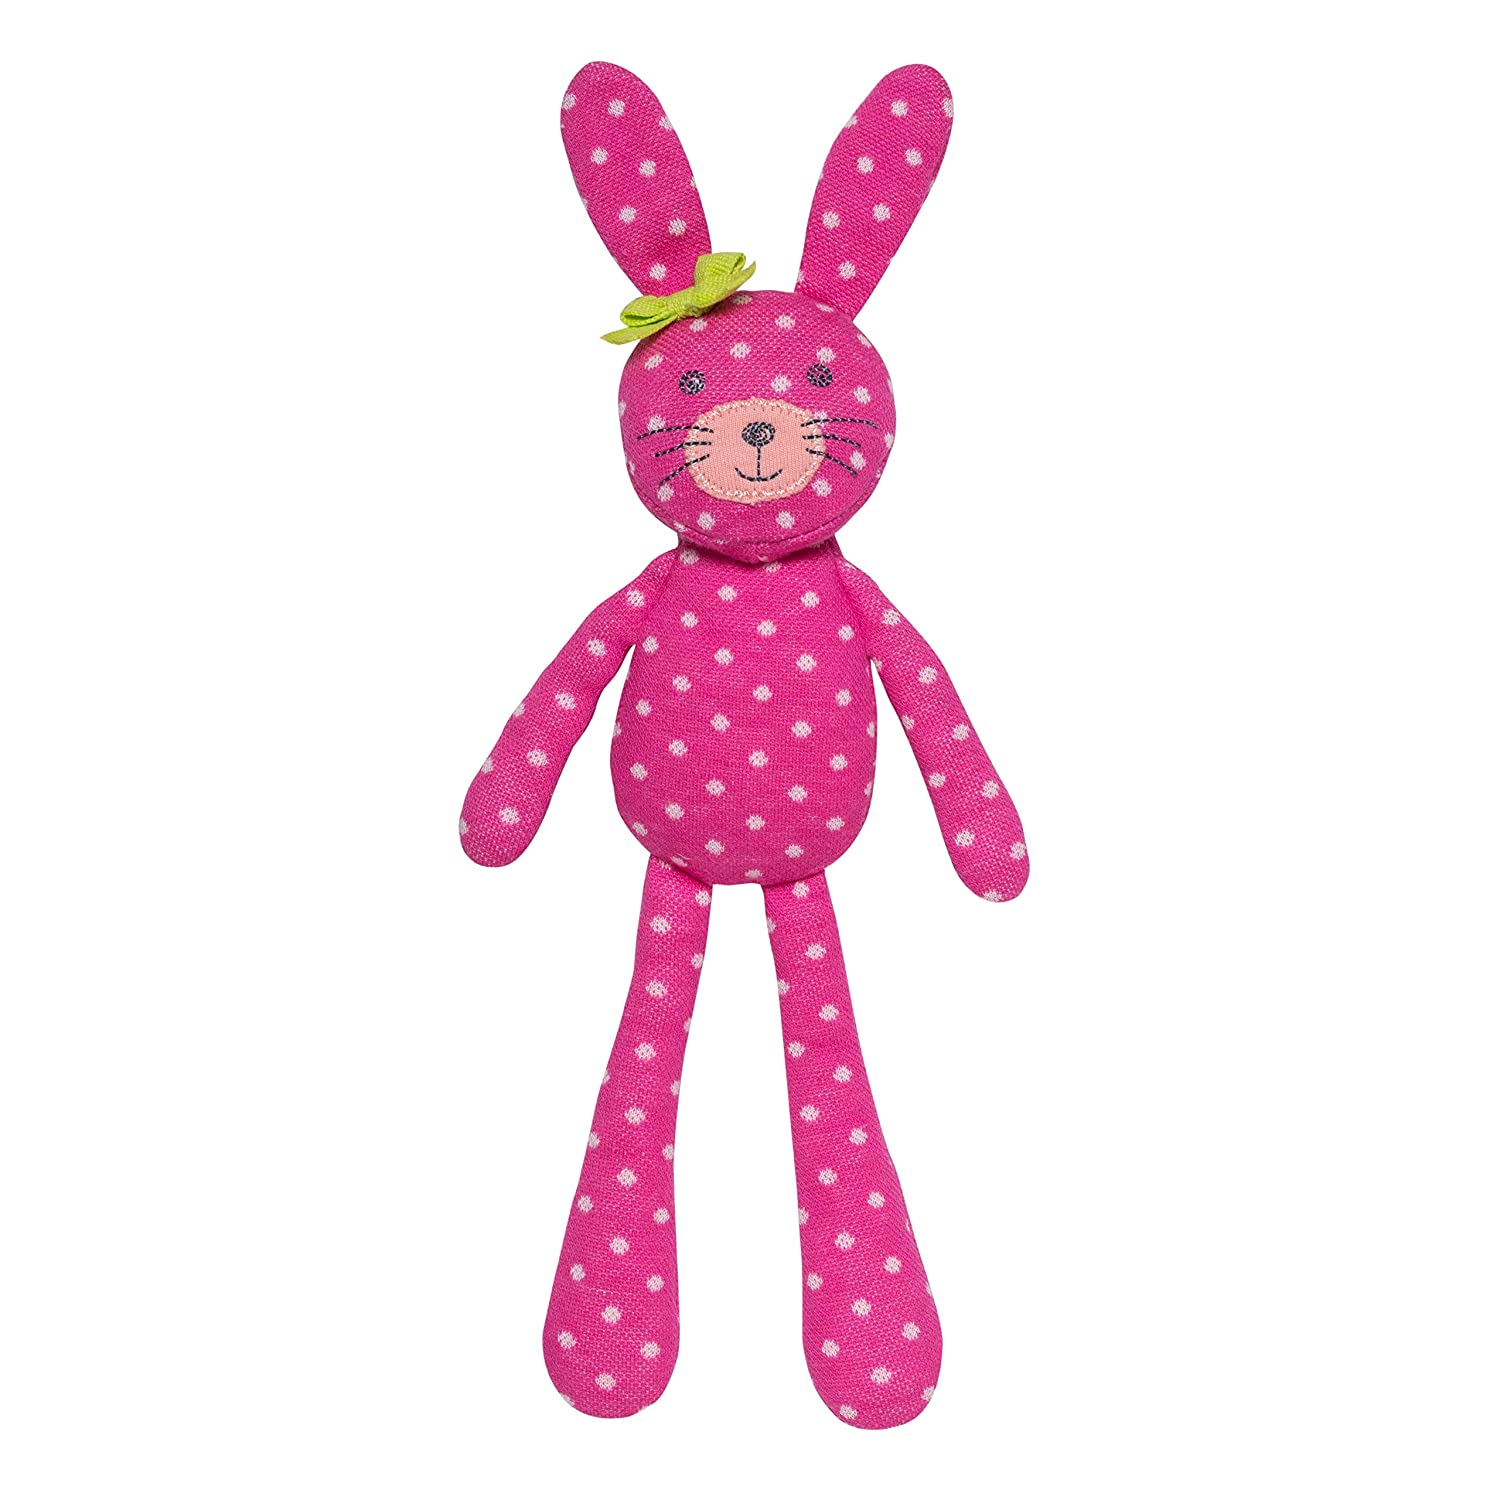 Apple Park Organic Farm Buddies - Spring Bunny Pink Polka Dot Plush Baby Toy for Newborns, Infants, Toddlers - Hypoallergenic, 100% Organic Cotton